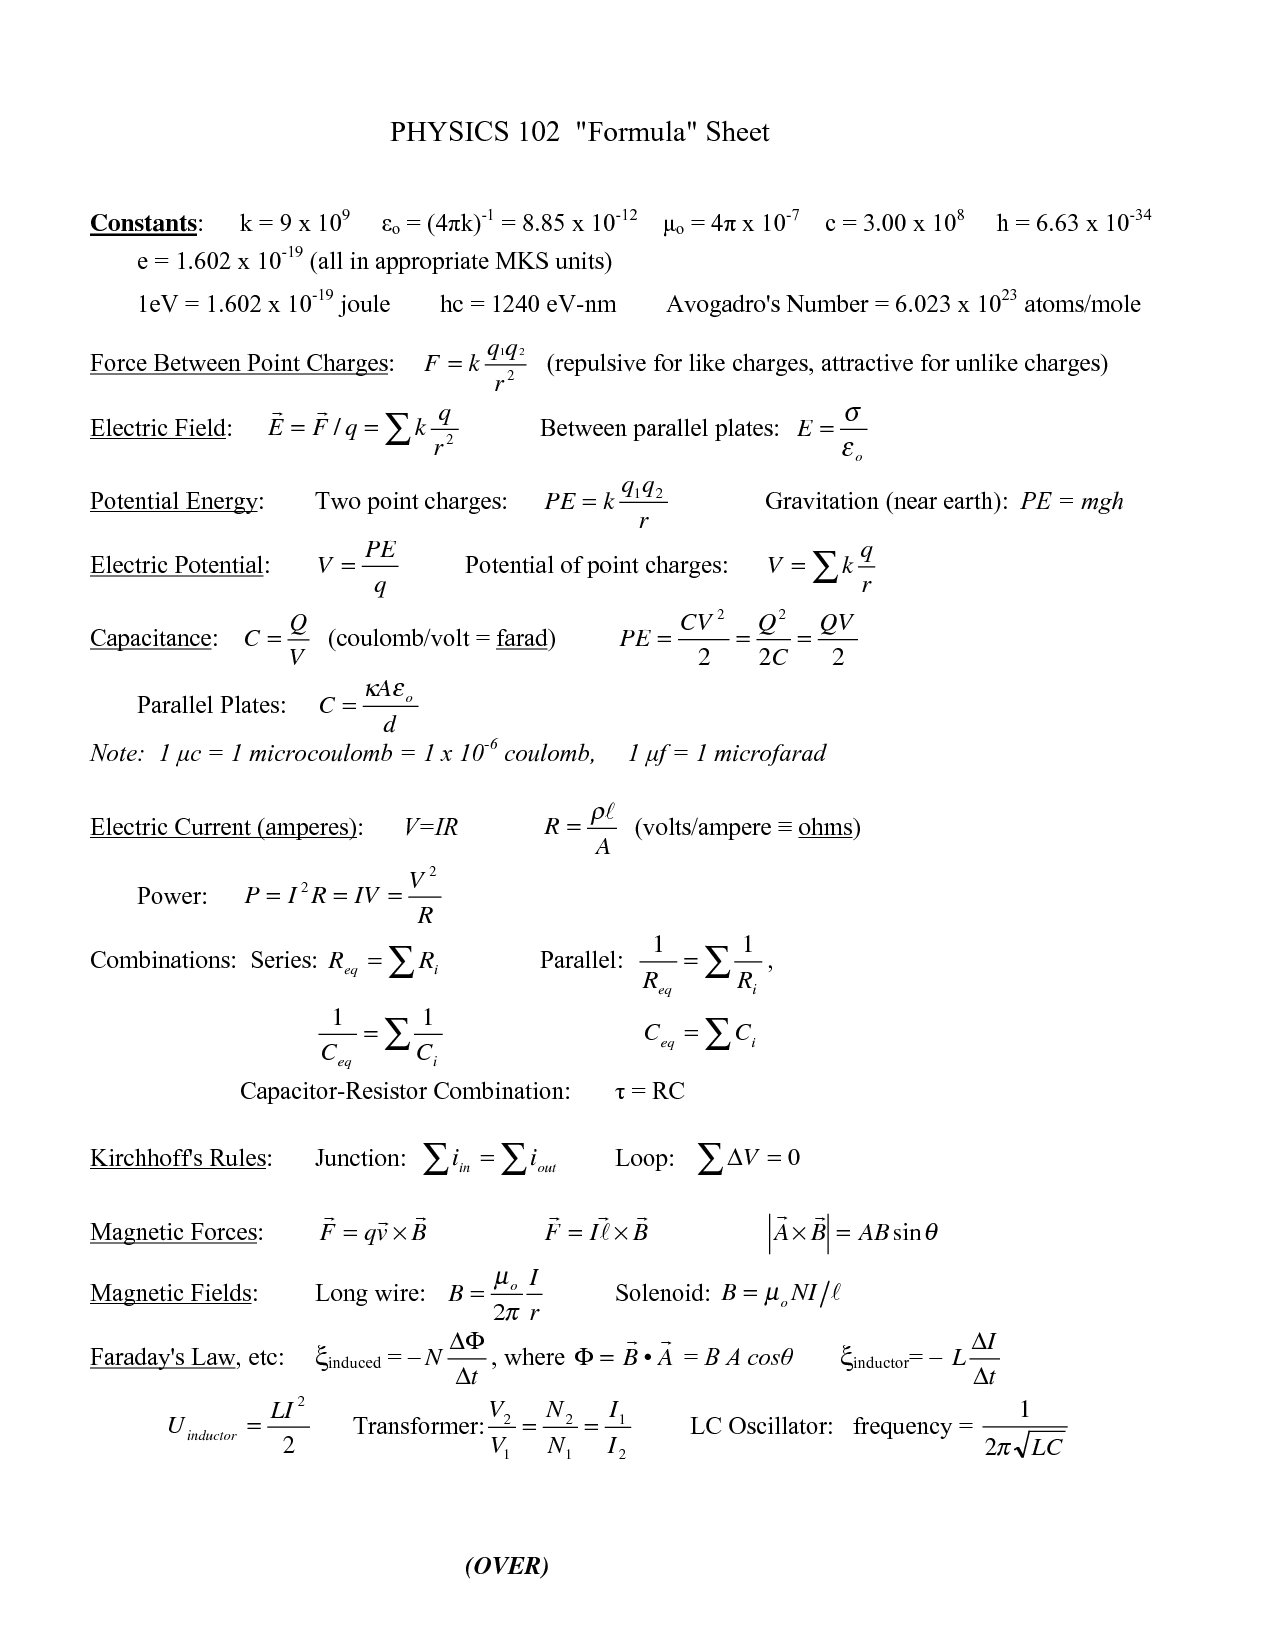 Physics 2 Formulas  Almost every formula you need  | physics